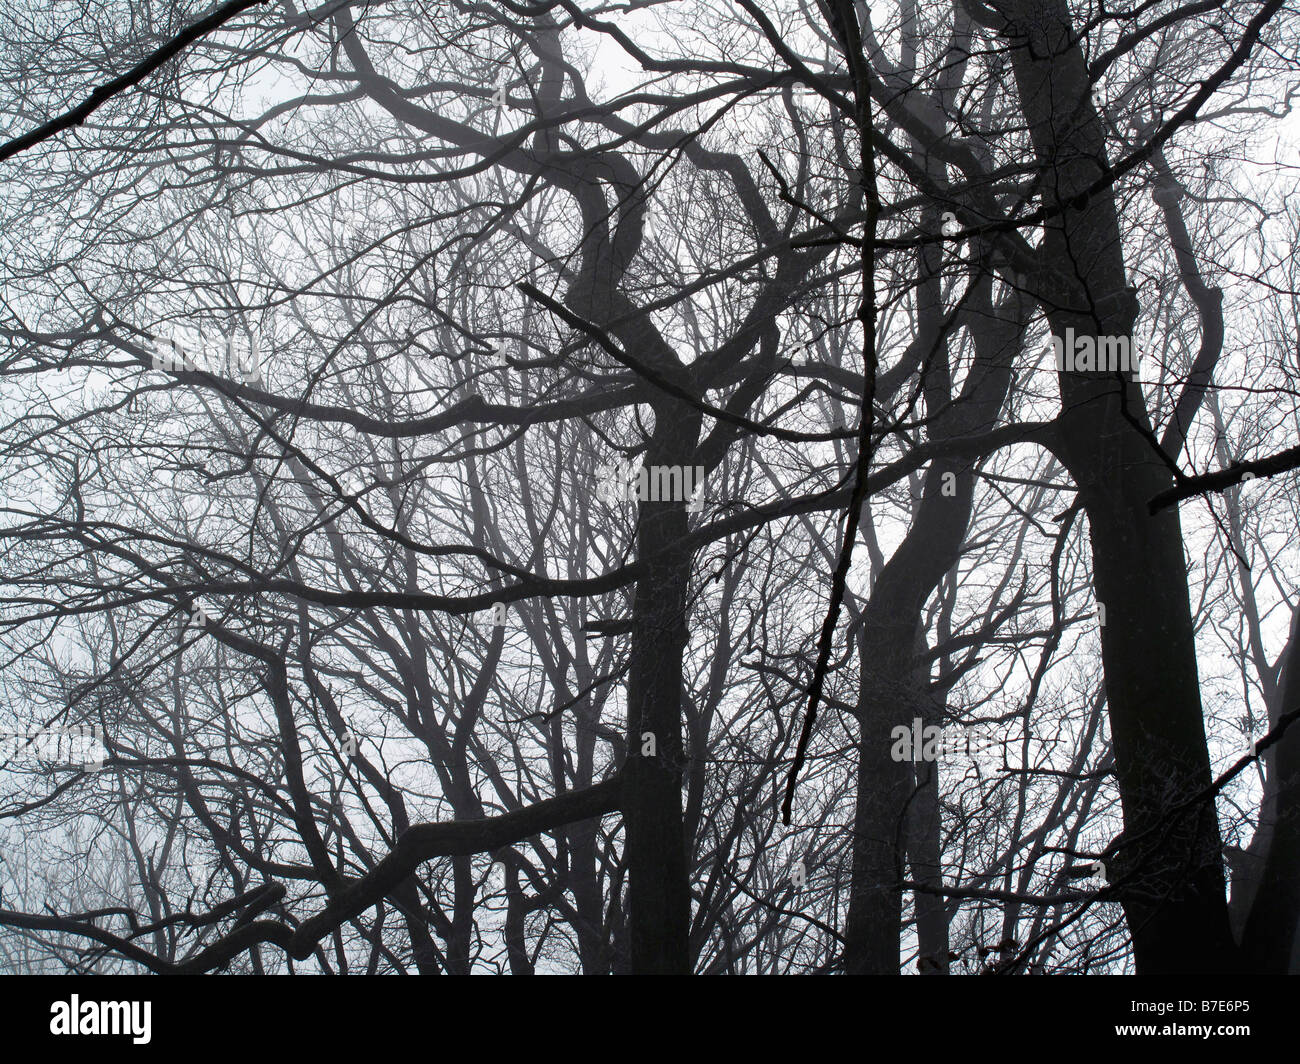 foggy trees canton of zurich switzerland - Stock Image